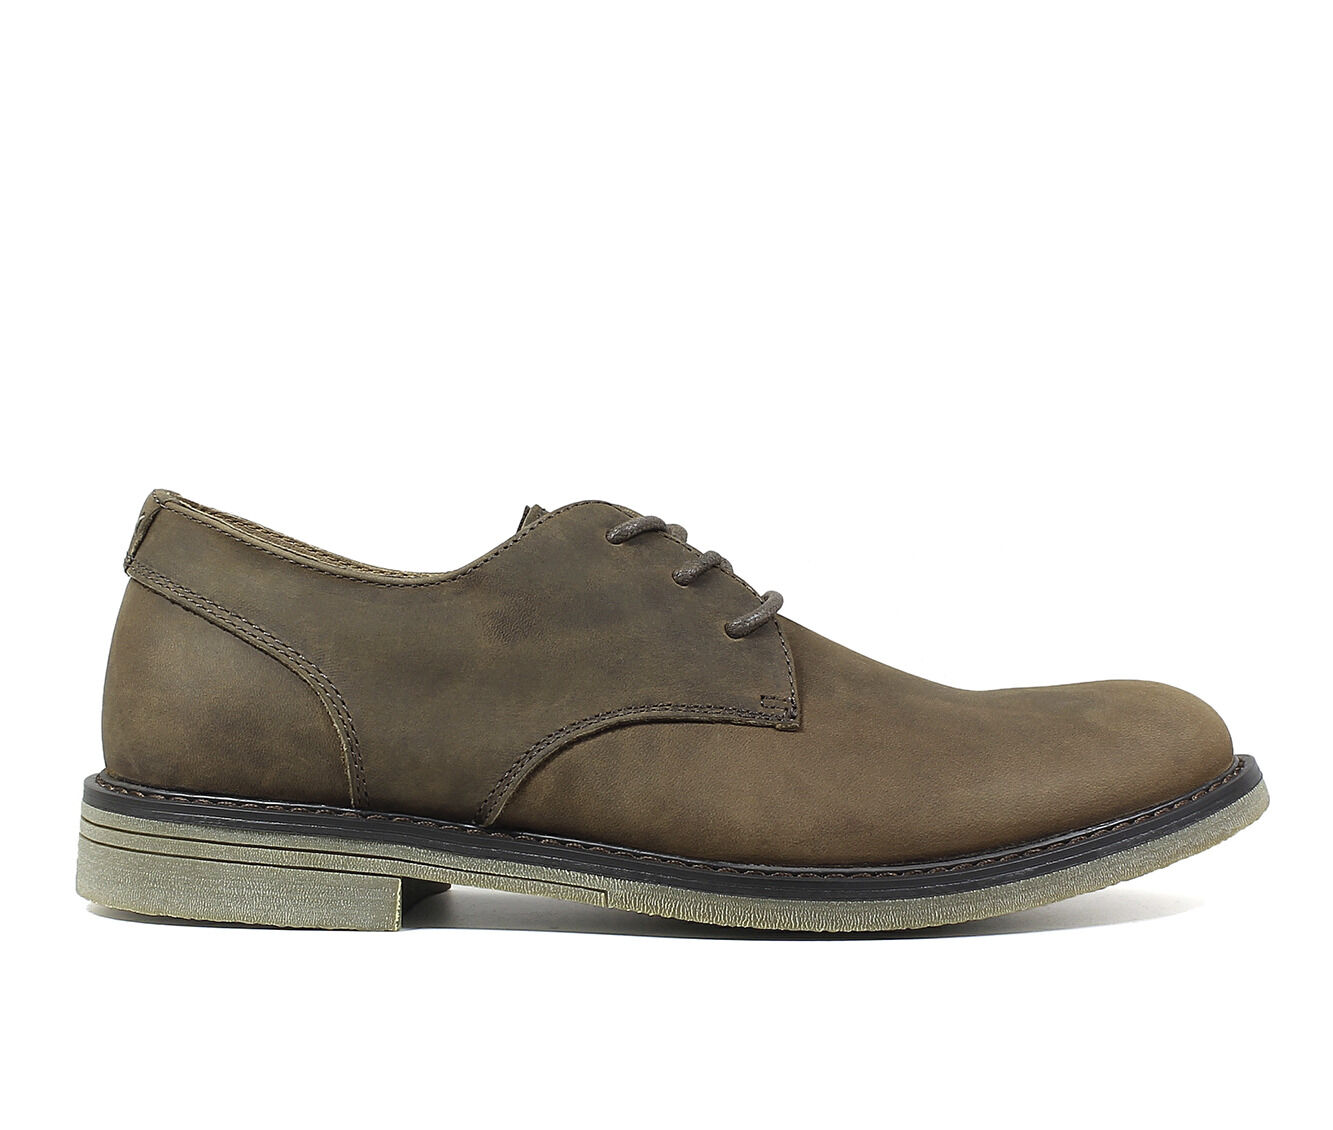 Men's Nunn Bush Linwood Plain Toe Oxford Dress Shoes Brown